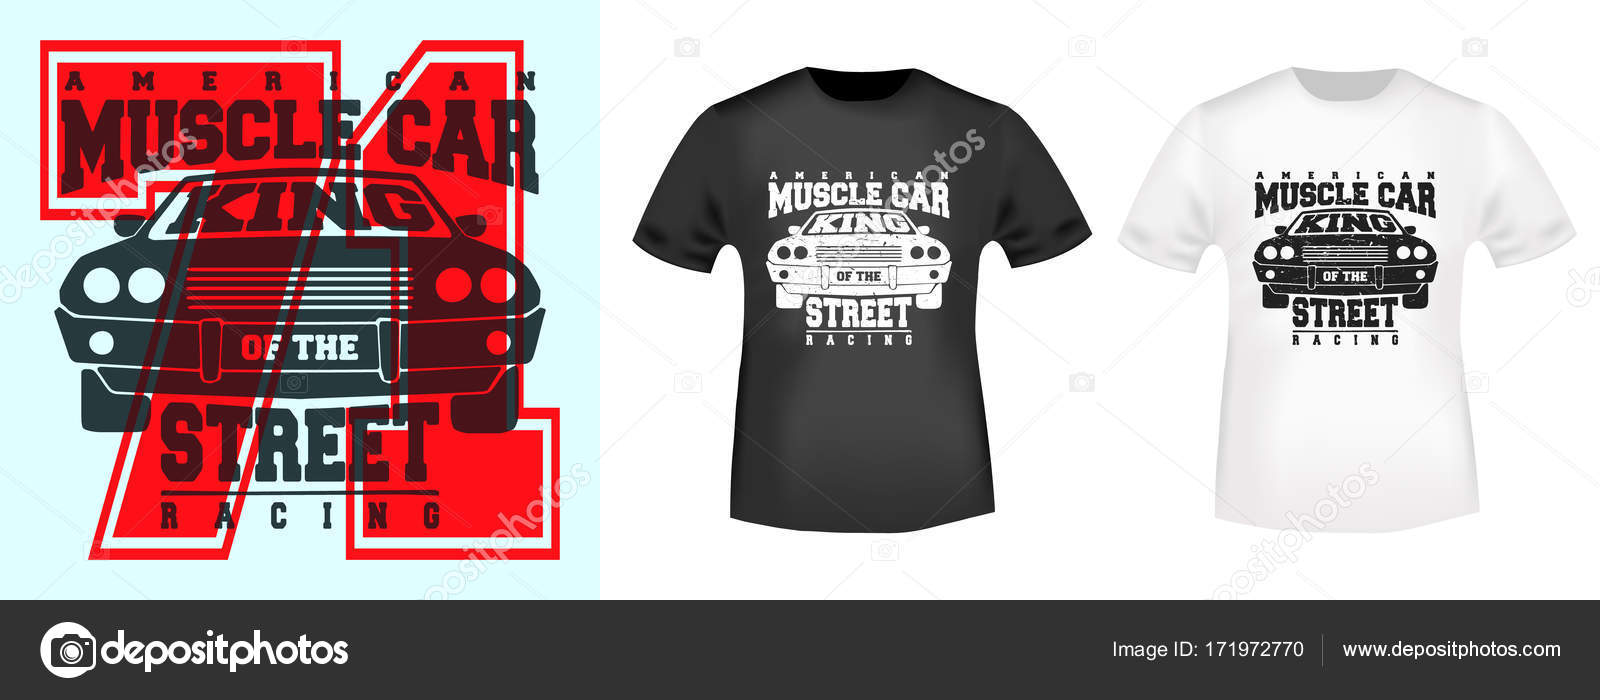 bc1cc694 T-shirt print design. American muscle car vintage stamp and t shirt mockup.  Printing and badge applique label t-shirts, jeans, casual wear.